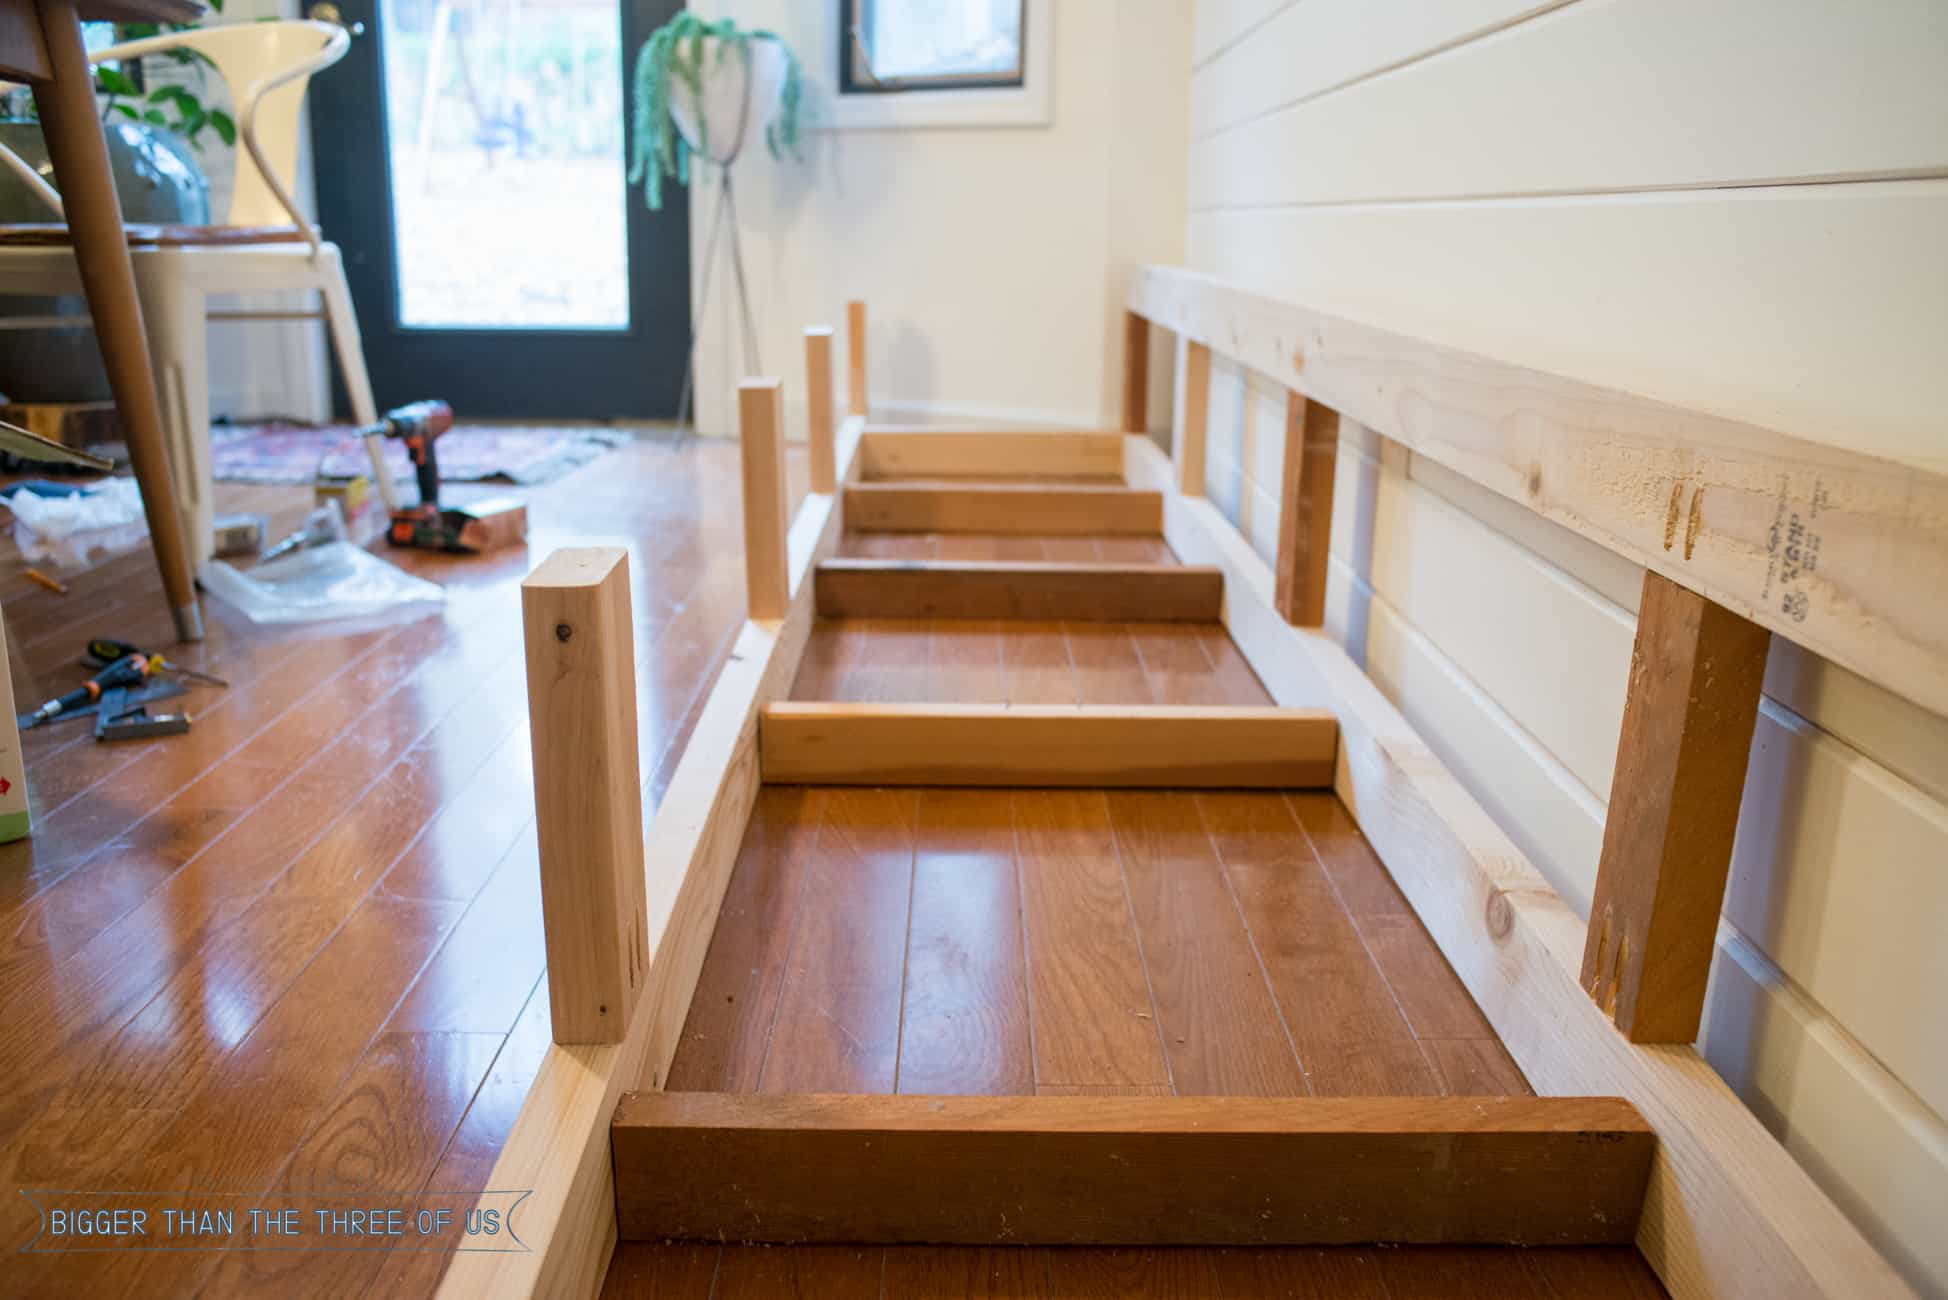 Best ideas about DIY Bench Seating . Save or Pin Built in Banquette Tutorial Bigger Than the Three of Us Now.